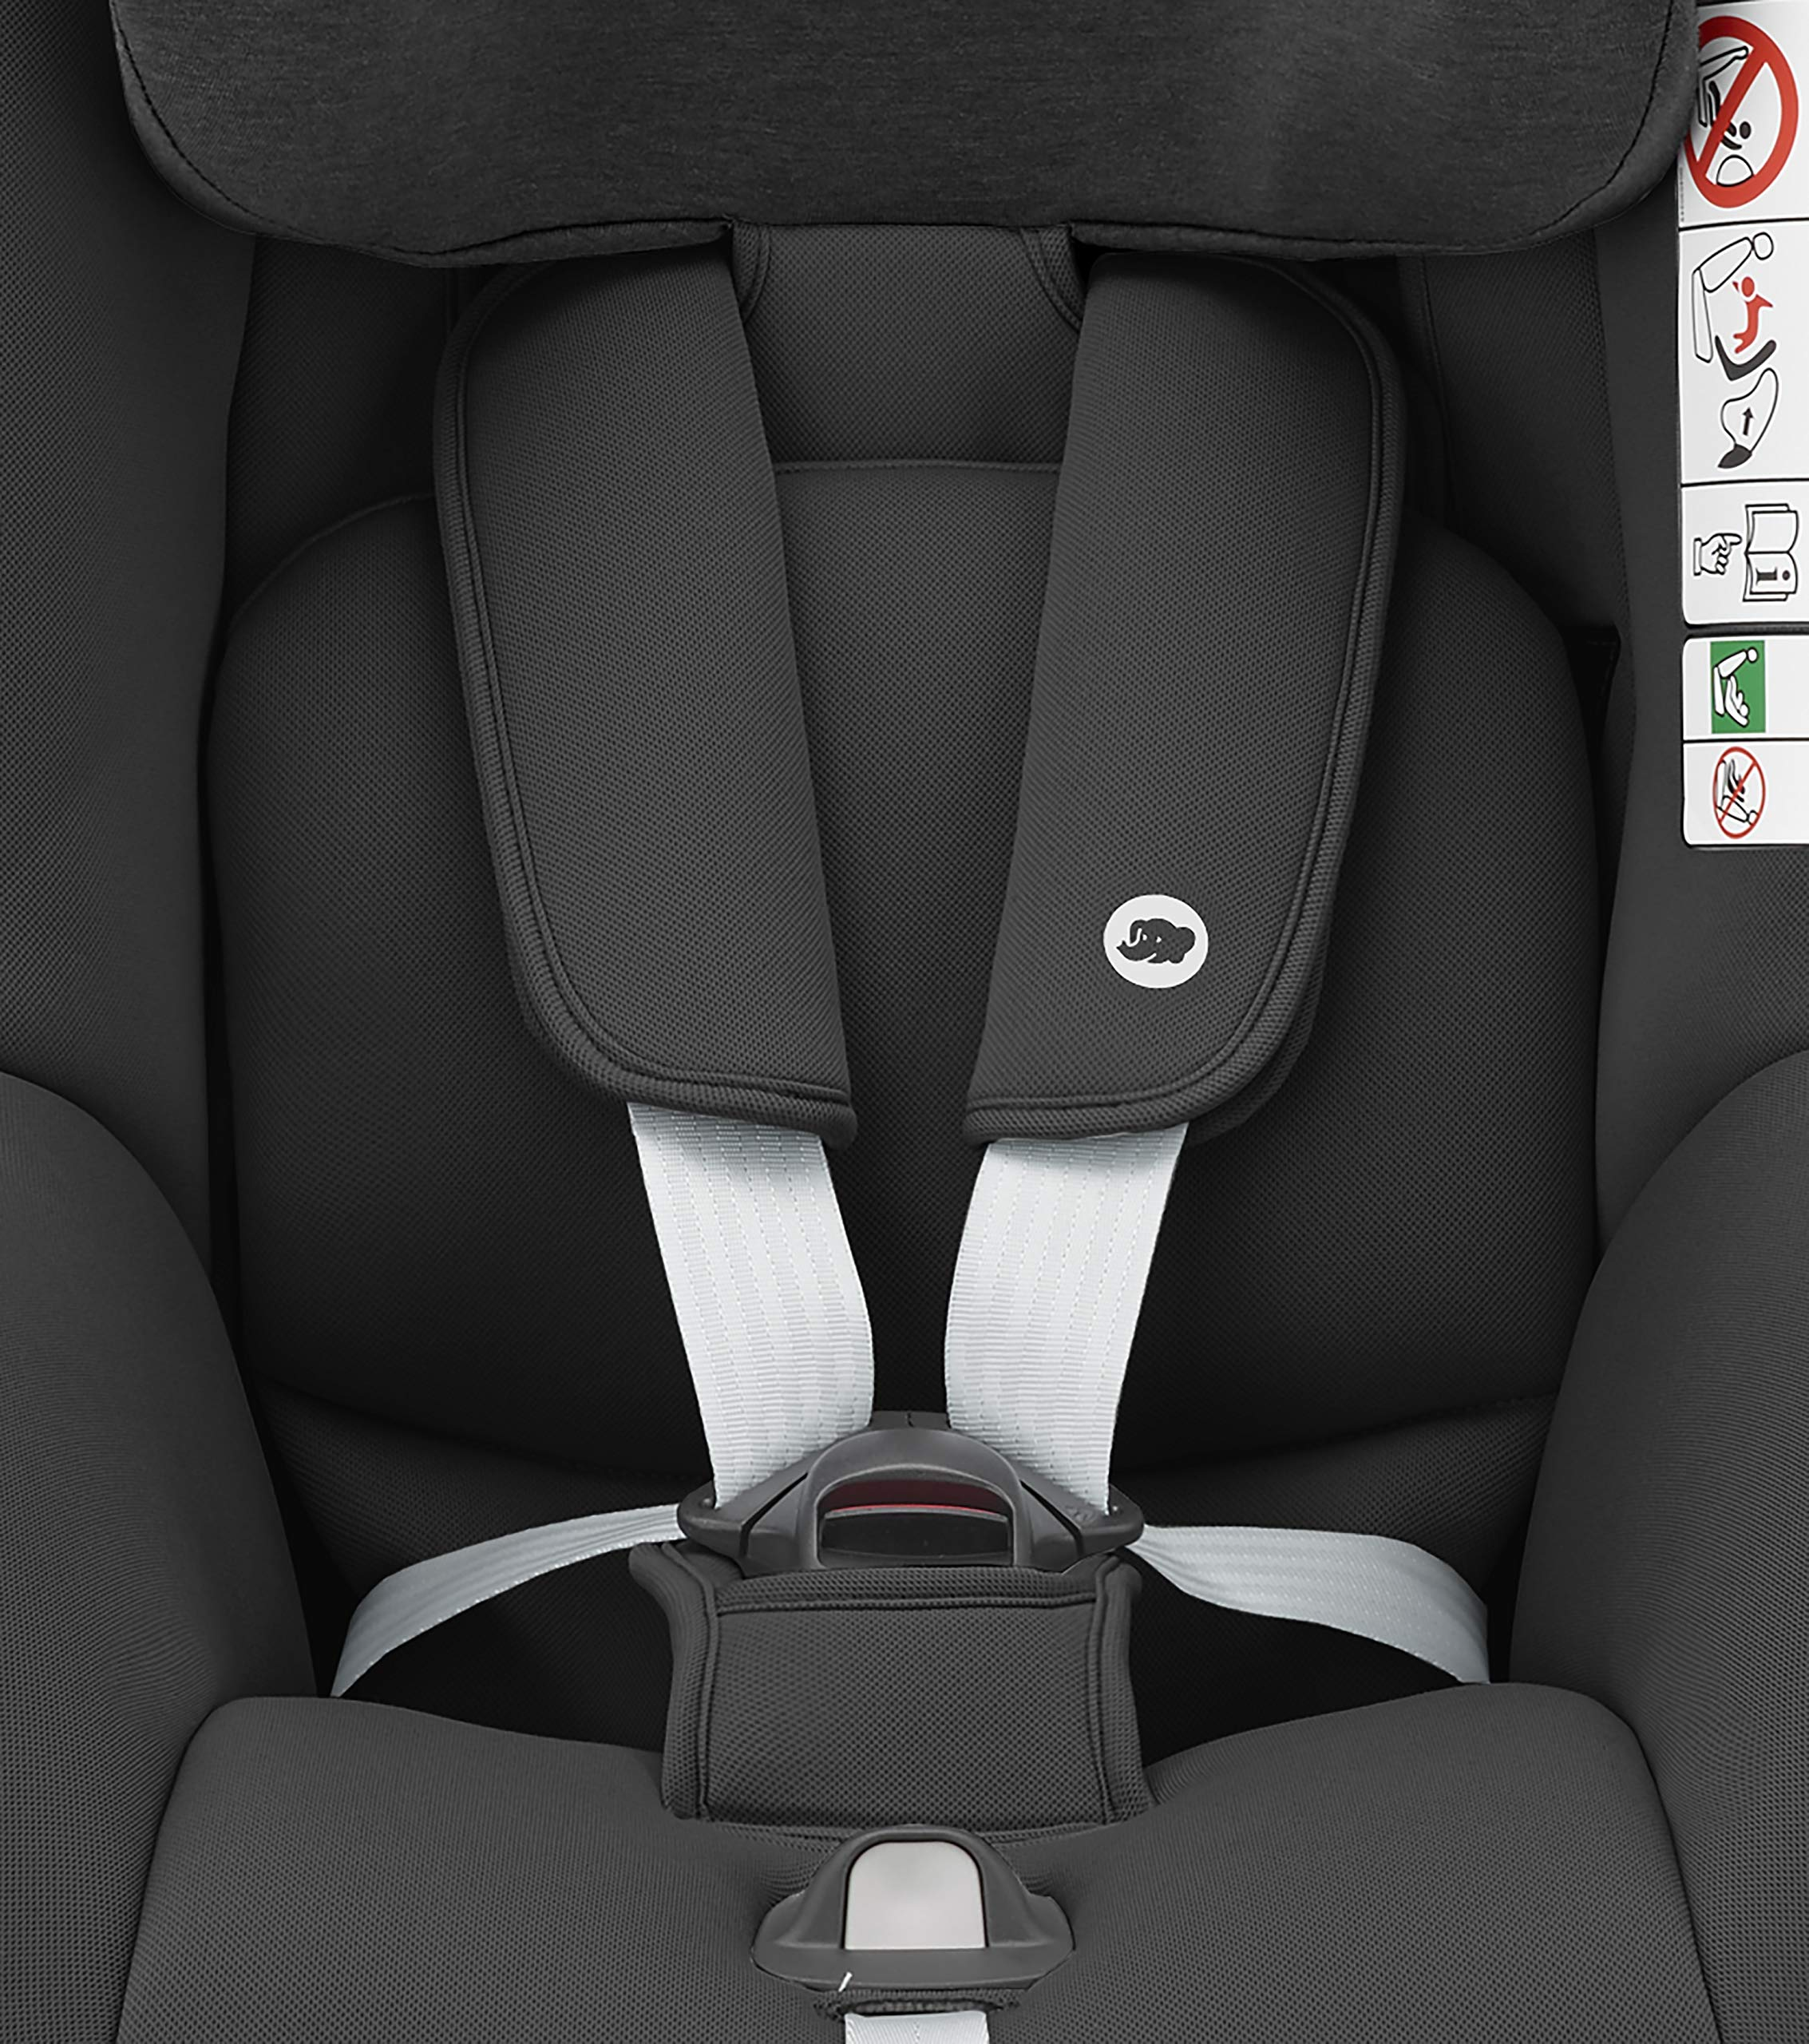 Bébé Confort Pearl Smart i Size 6.88 kg Bébé Confort Car seat 9-18 kg for children from 6 months to 4 years approx. height between 67 - 105 cm, approved i-size (ECE R129) Can be used in the opposite direction of travel up to 4 years (a backward mounted seat is 5 times safer) to protect baby's head and neck Car seat reclines into 4 positions in both directions for maximum comfort for your child. 7